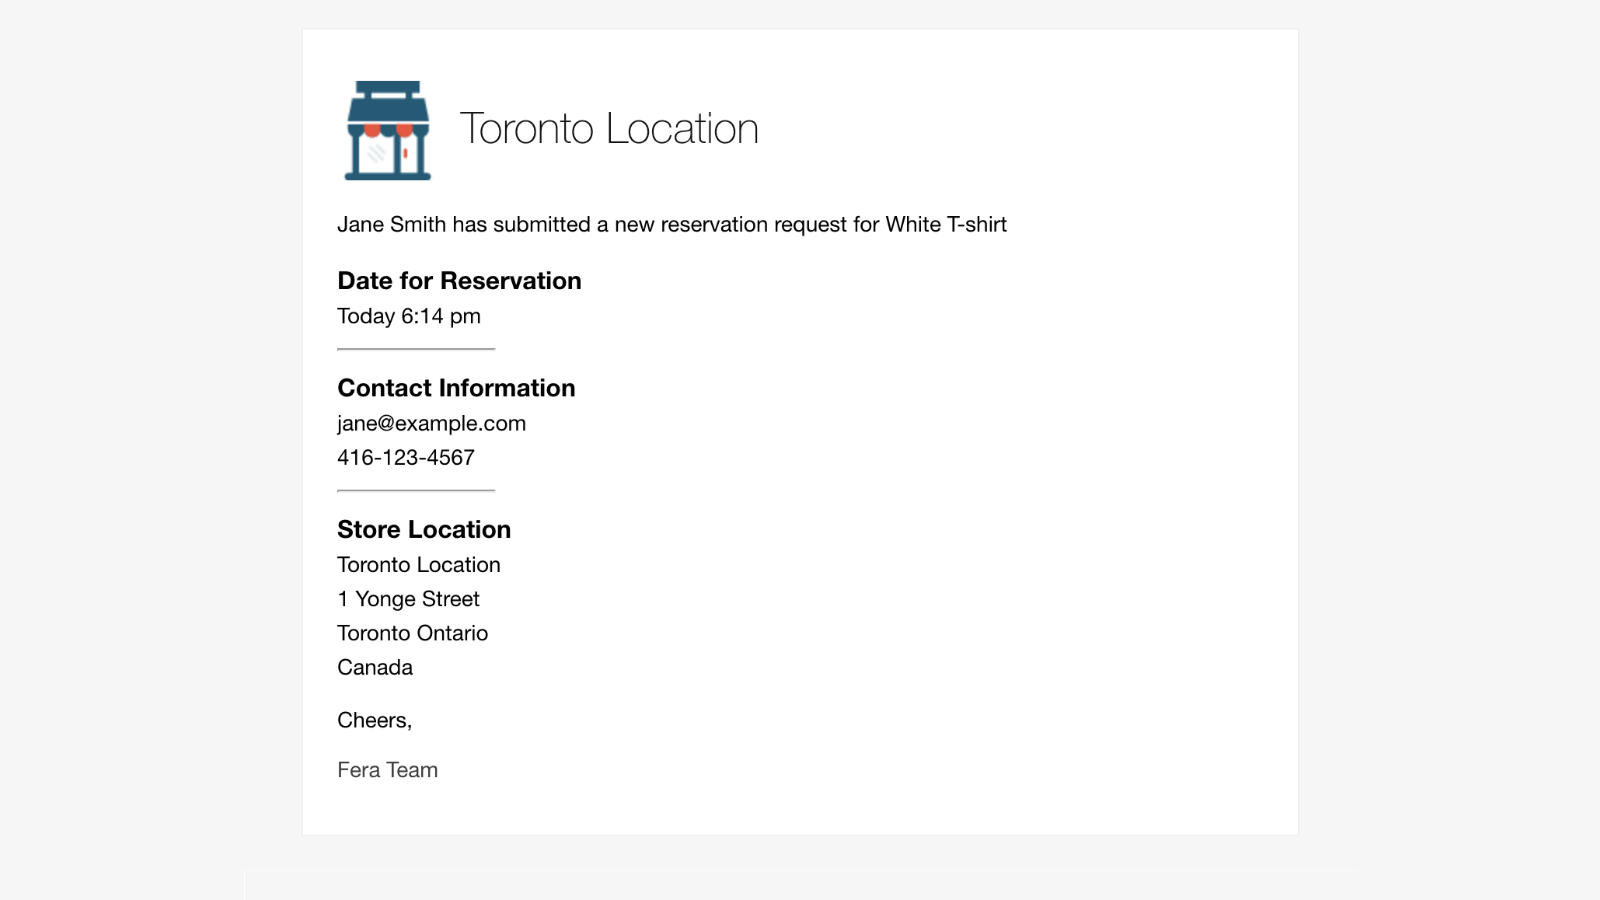 Reservation Received Email